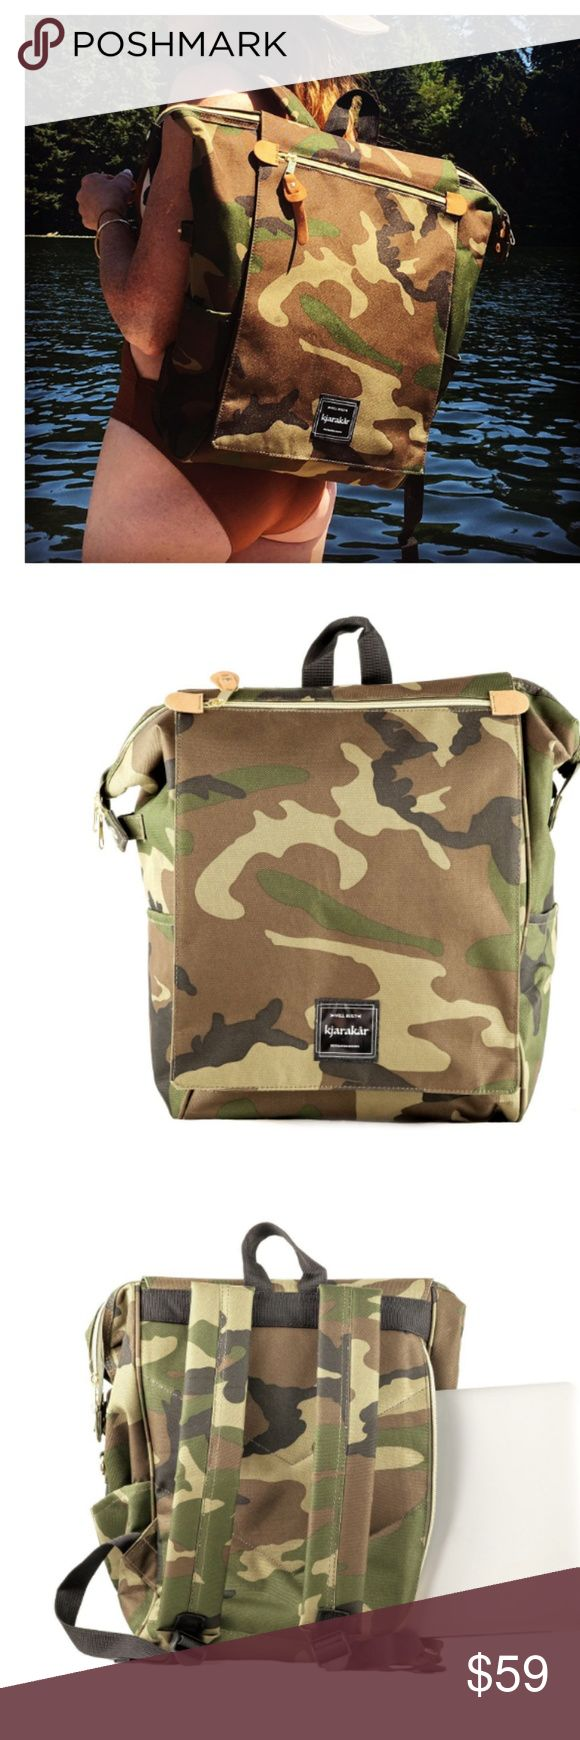 "Kjarakär Backpack for Women, Girls, Men and Boys NWT !  (CAMO )  Kjarakär Backpack for Women, Girls, Men and Boys. Best Unisex Commuter Bag, School Bookbag, Laptop Bag, Weekender, Diaper Bag. TSA Friendly | Waterproof. If you've been looking for a backpack with the perfect combo of style and function, then your search is over! Our low-profile design backpack not only will have you looking stylish and receiving compliments, but also has room for ""everything"" Bags Backpacks"